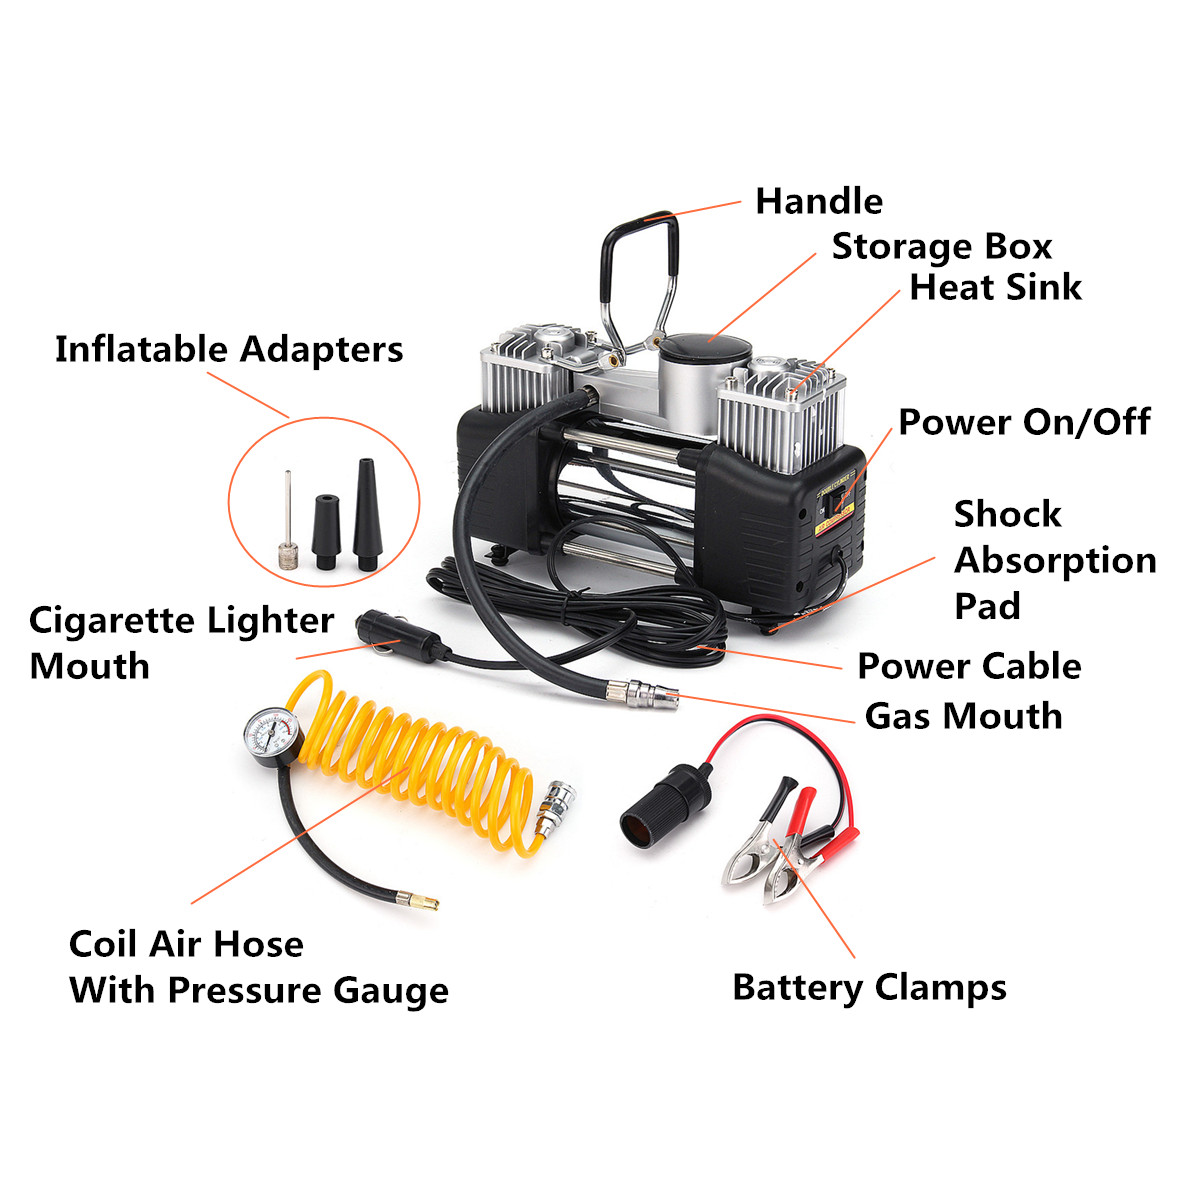 Heavy Duty Double Cylinder Air Pump 12V 150PSI 150W Compressor Car Tire Tyre Inflator Allow use 3pcs Inflatable Adapters Convent 12v portable digital car air tire compressor double cylinder heavy duty 150psi tyre pressure inflator pump vacuum cleaner